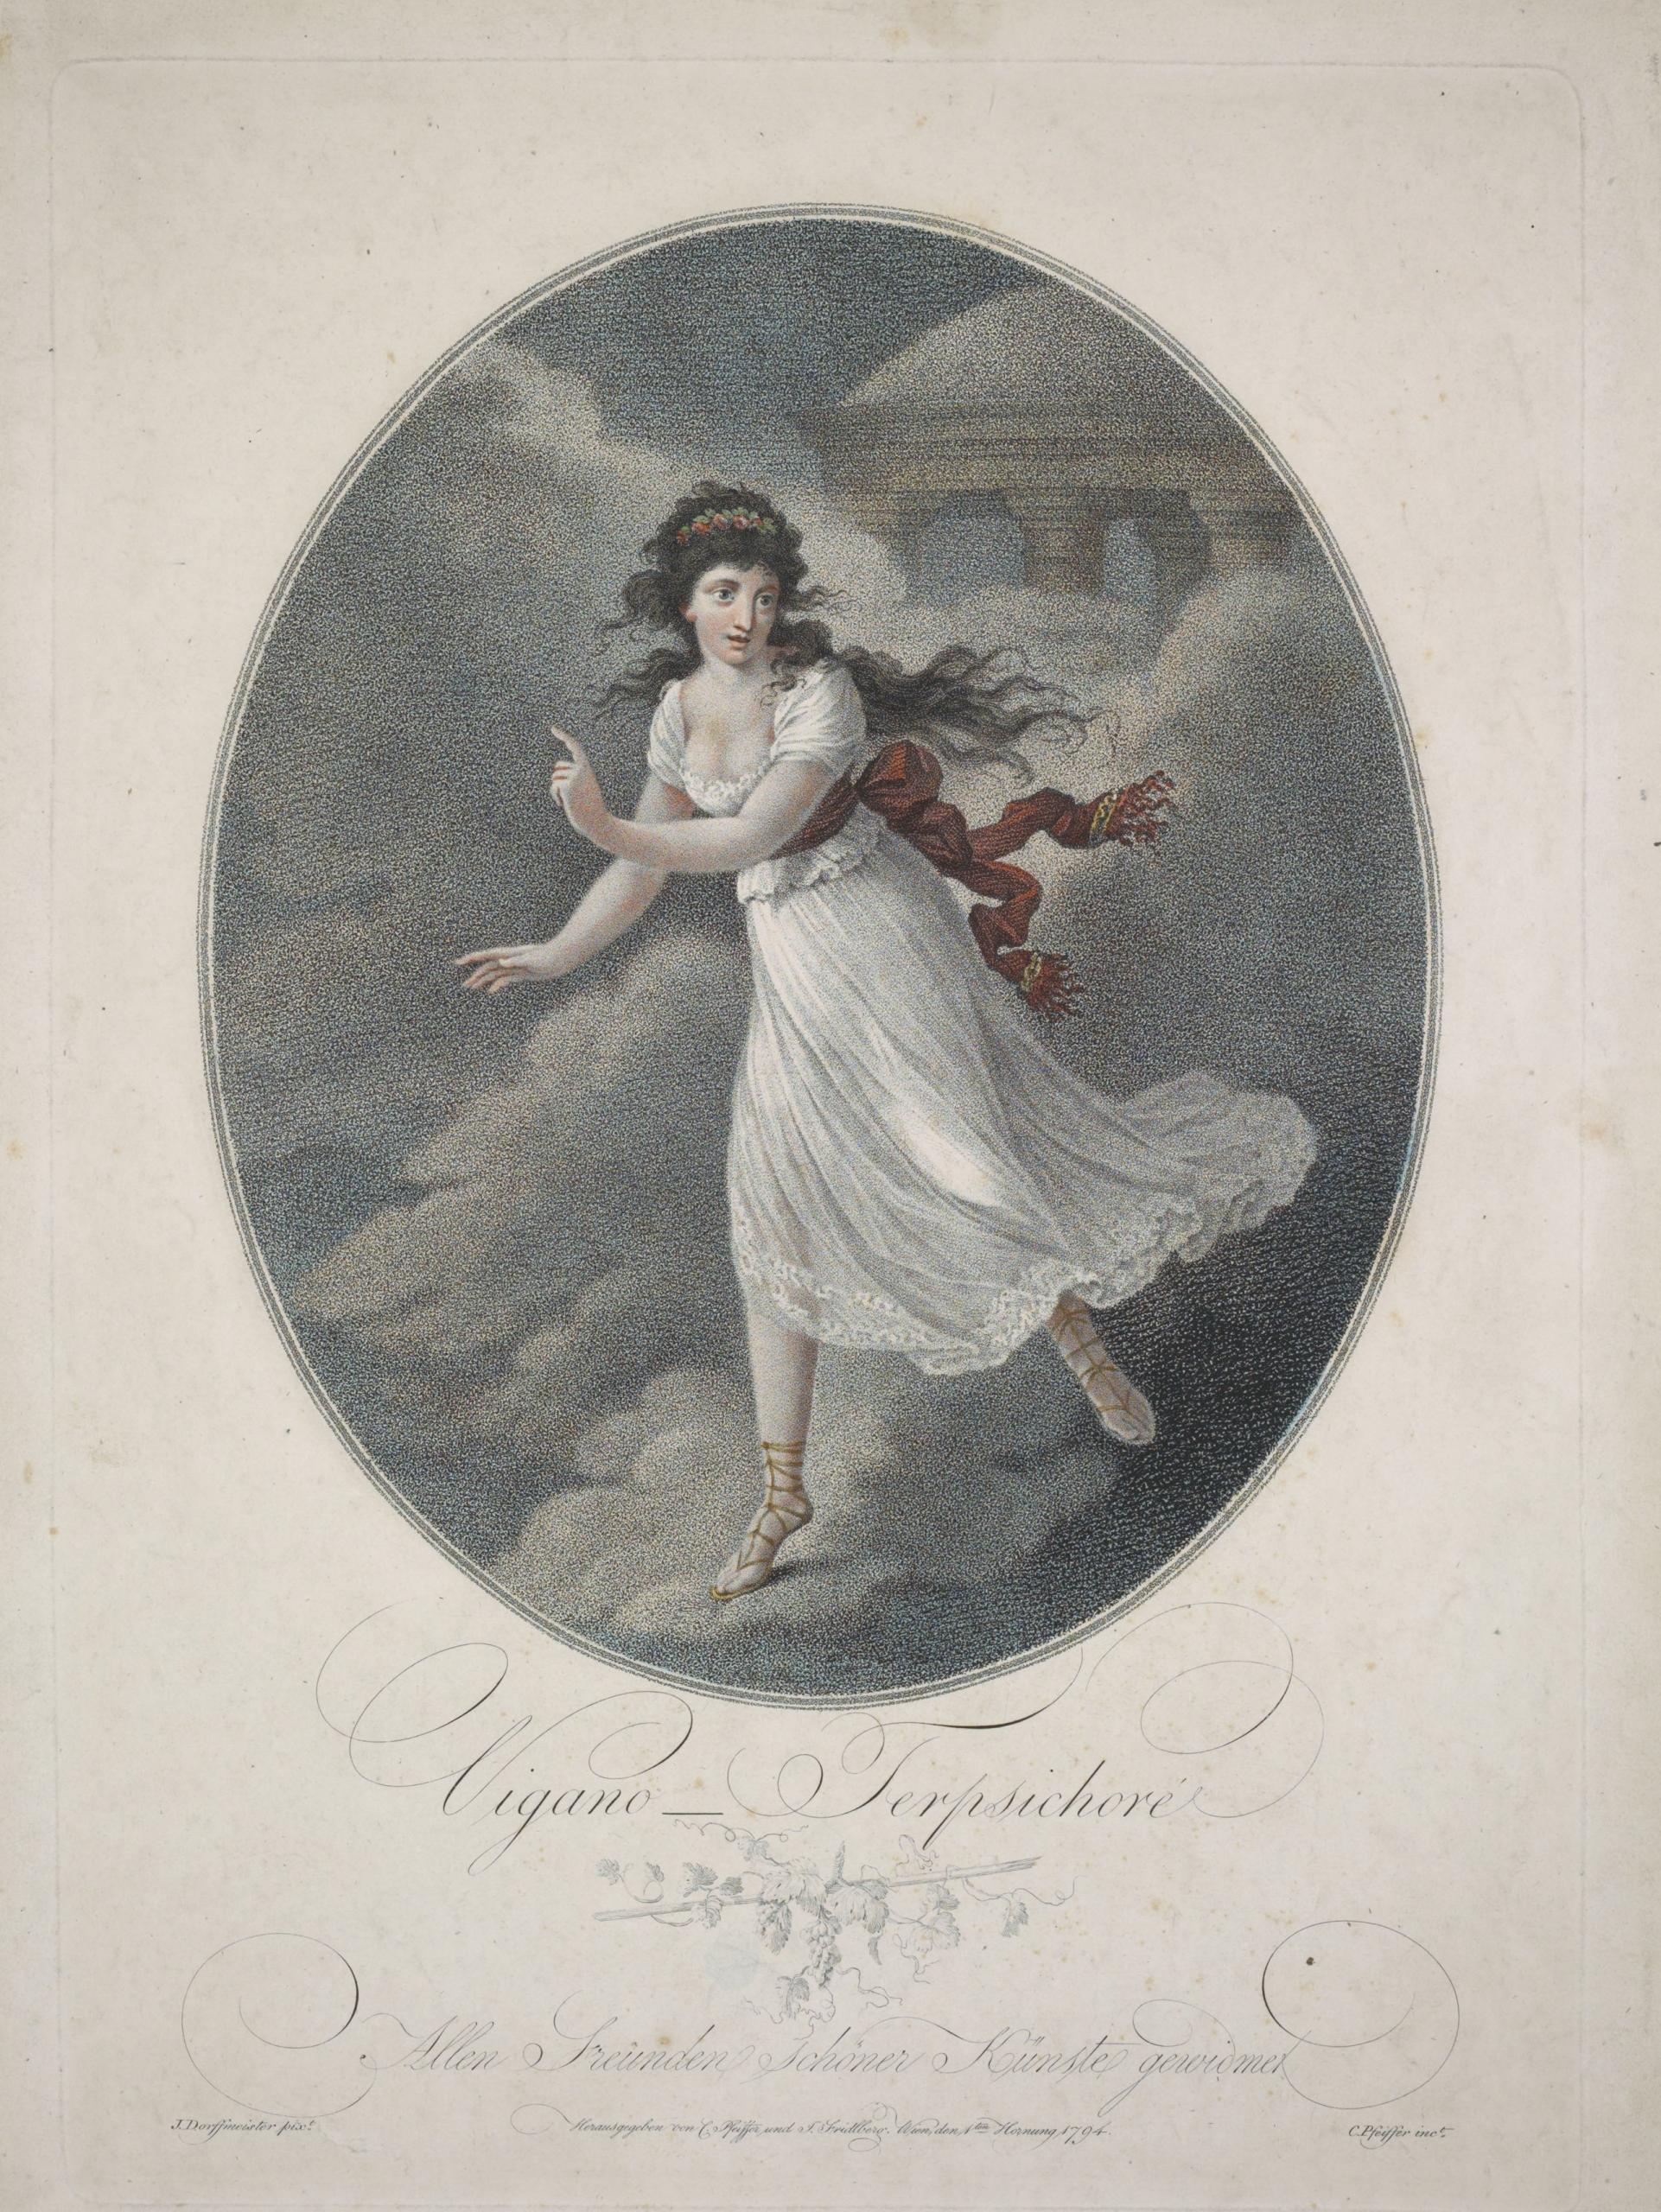 Eighteenth century Illustration of dancer Maria Vigano as Therpsichore, dressed in white, in Mount Olympus